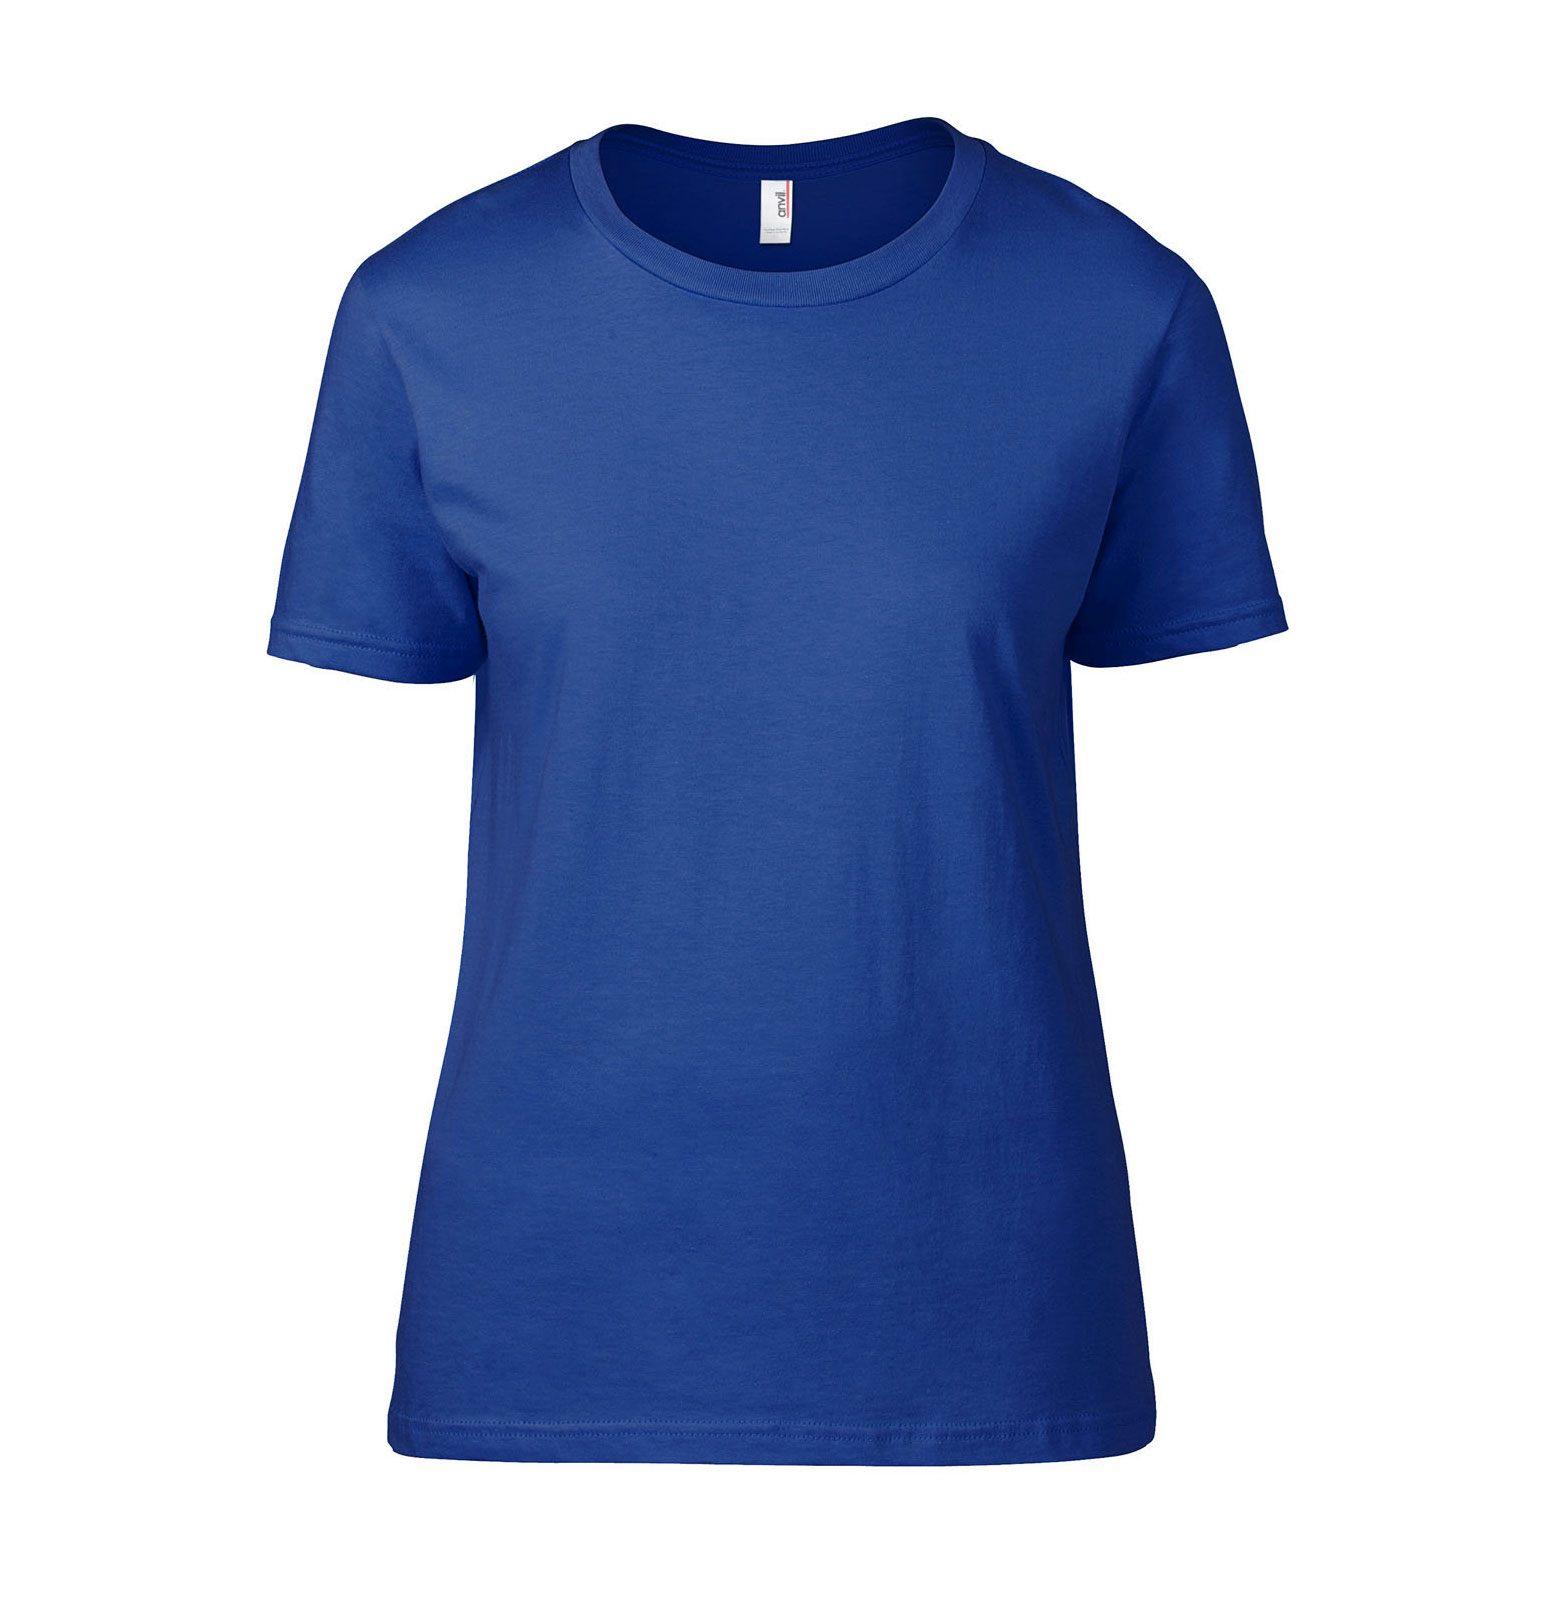 Anvil Ladies 100% Ringspun Cotton Fashion Fit Tee